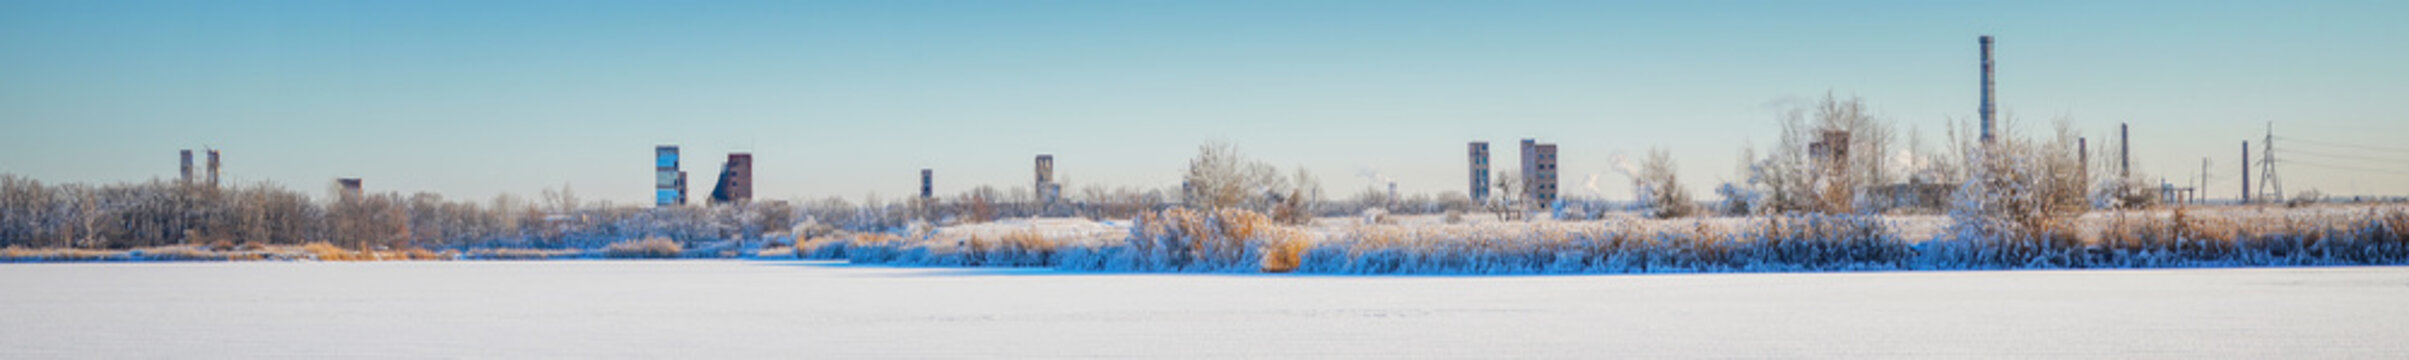 An abandoned old chemical plant on the bank of a frozen winter river covered with snow